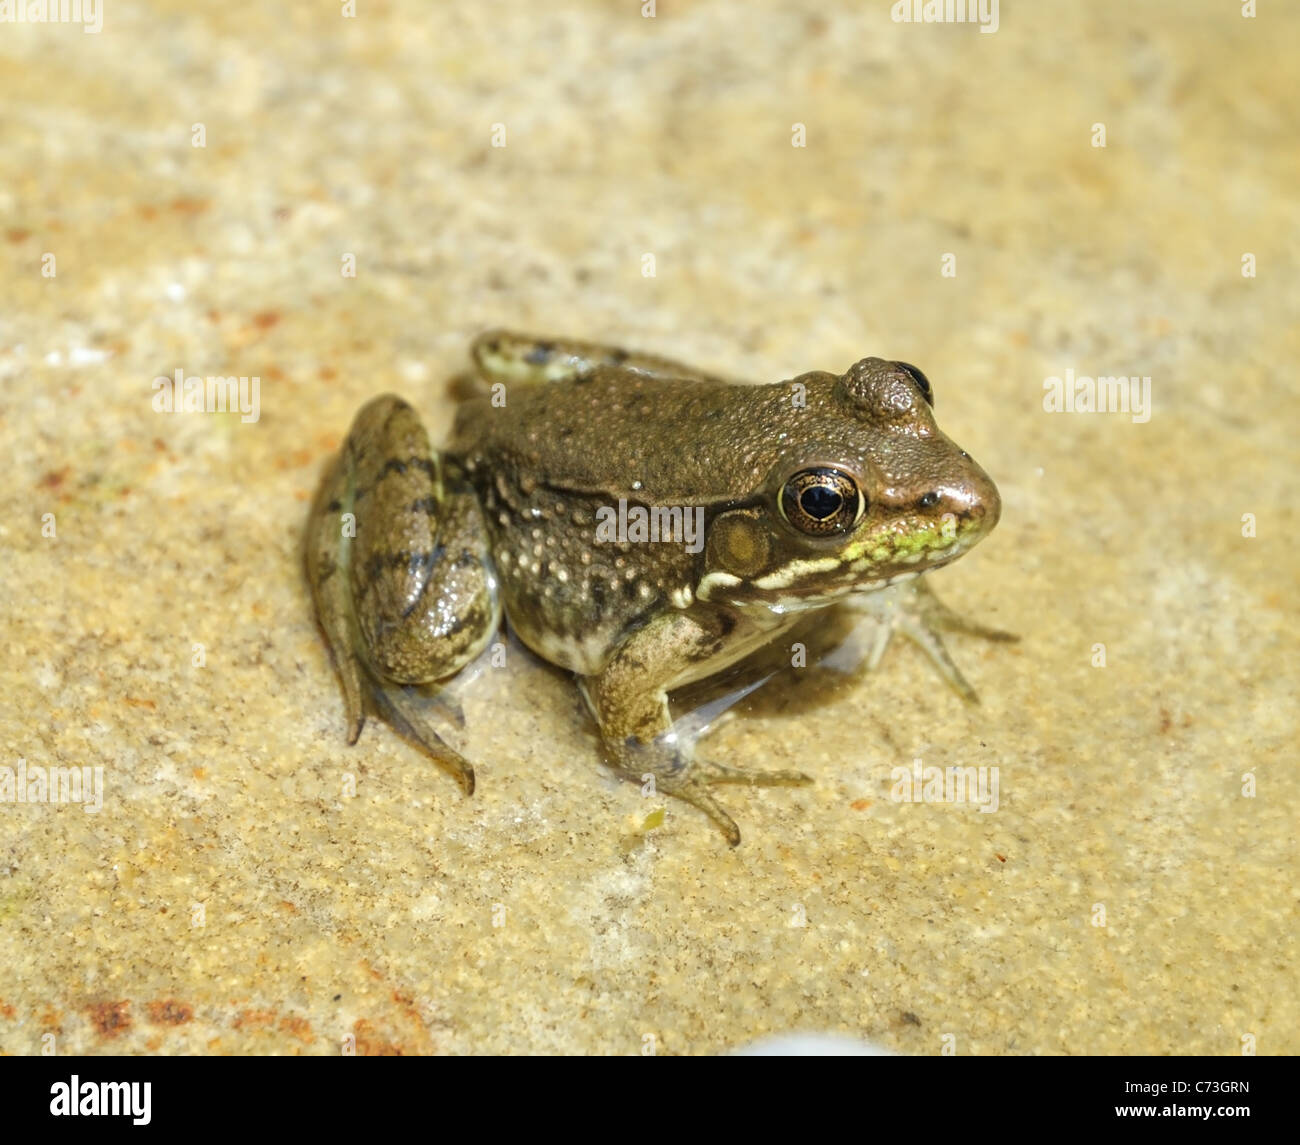 A little frog sitting on a stone in a pond - Stock Image